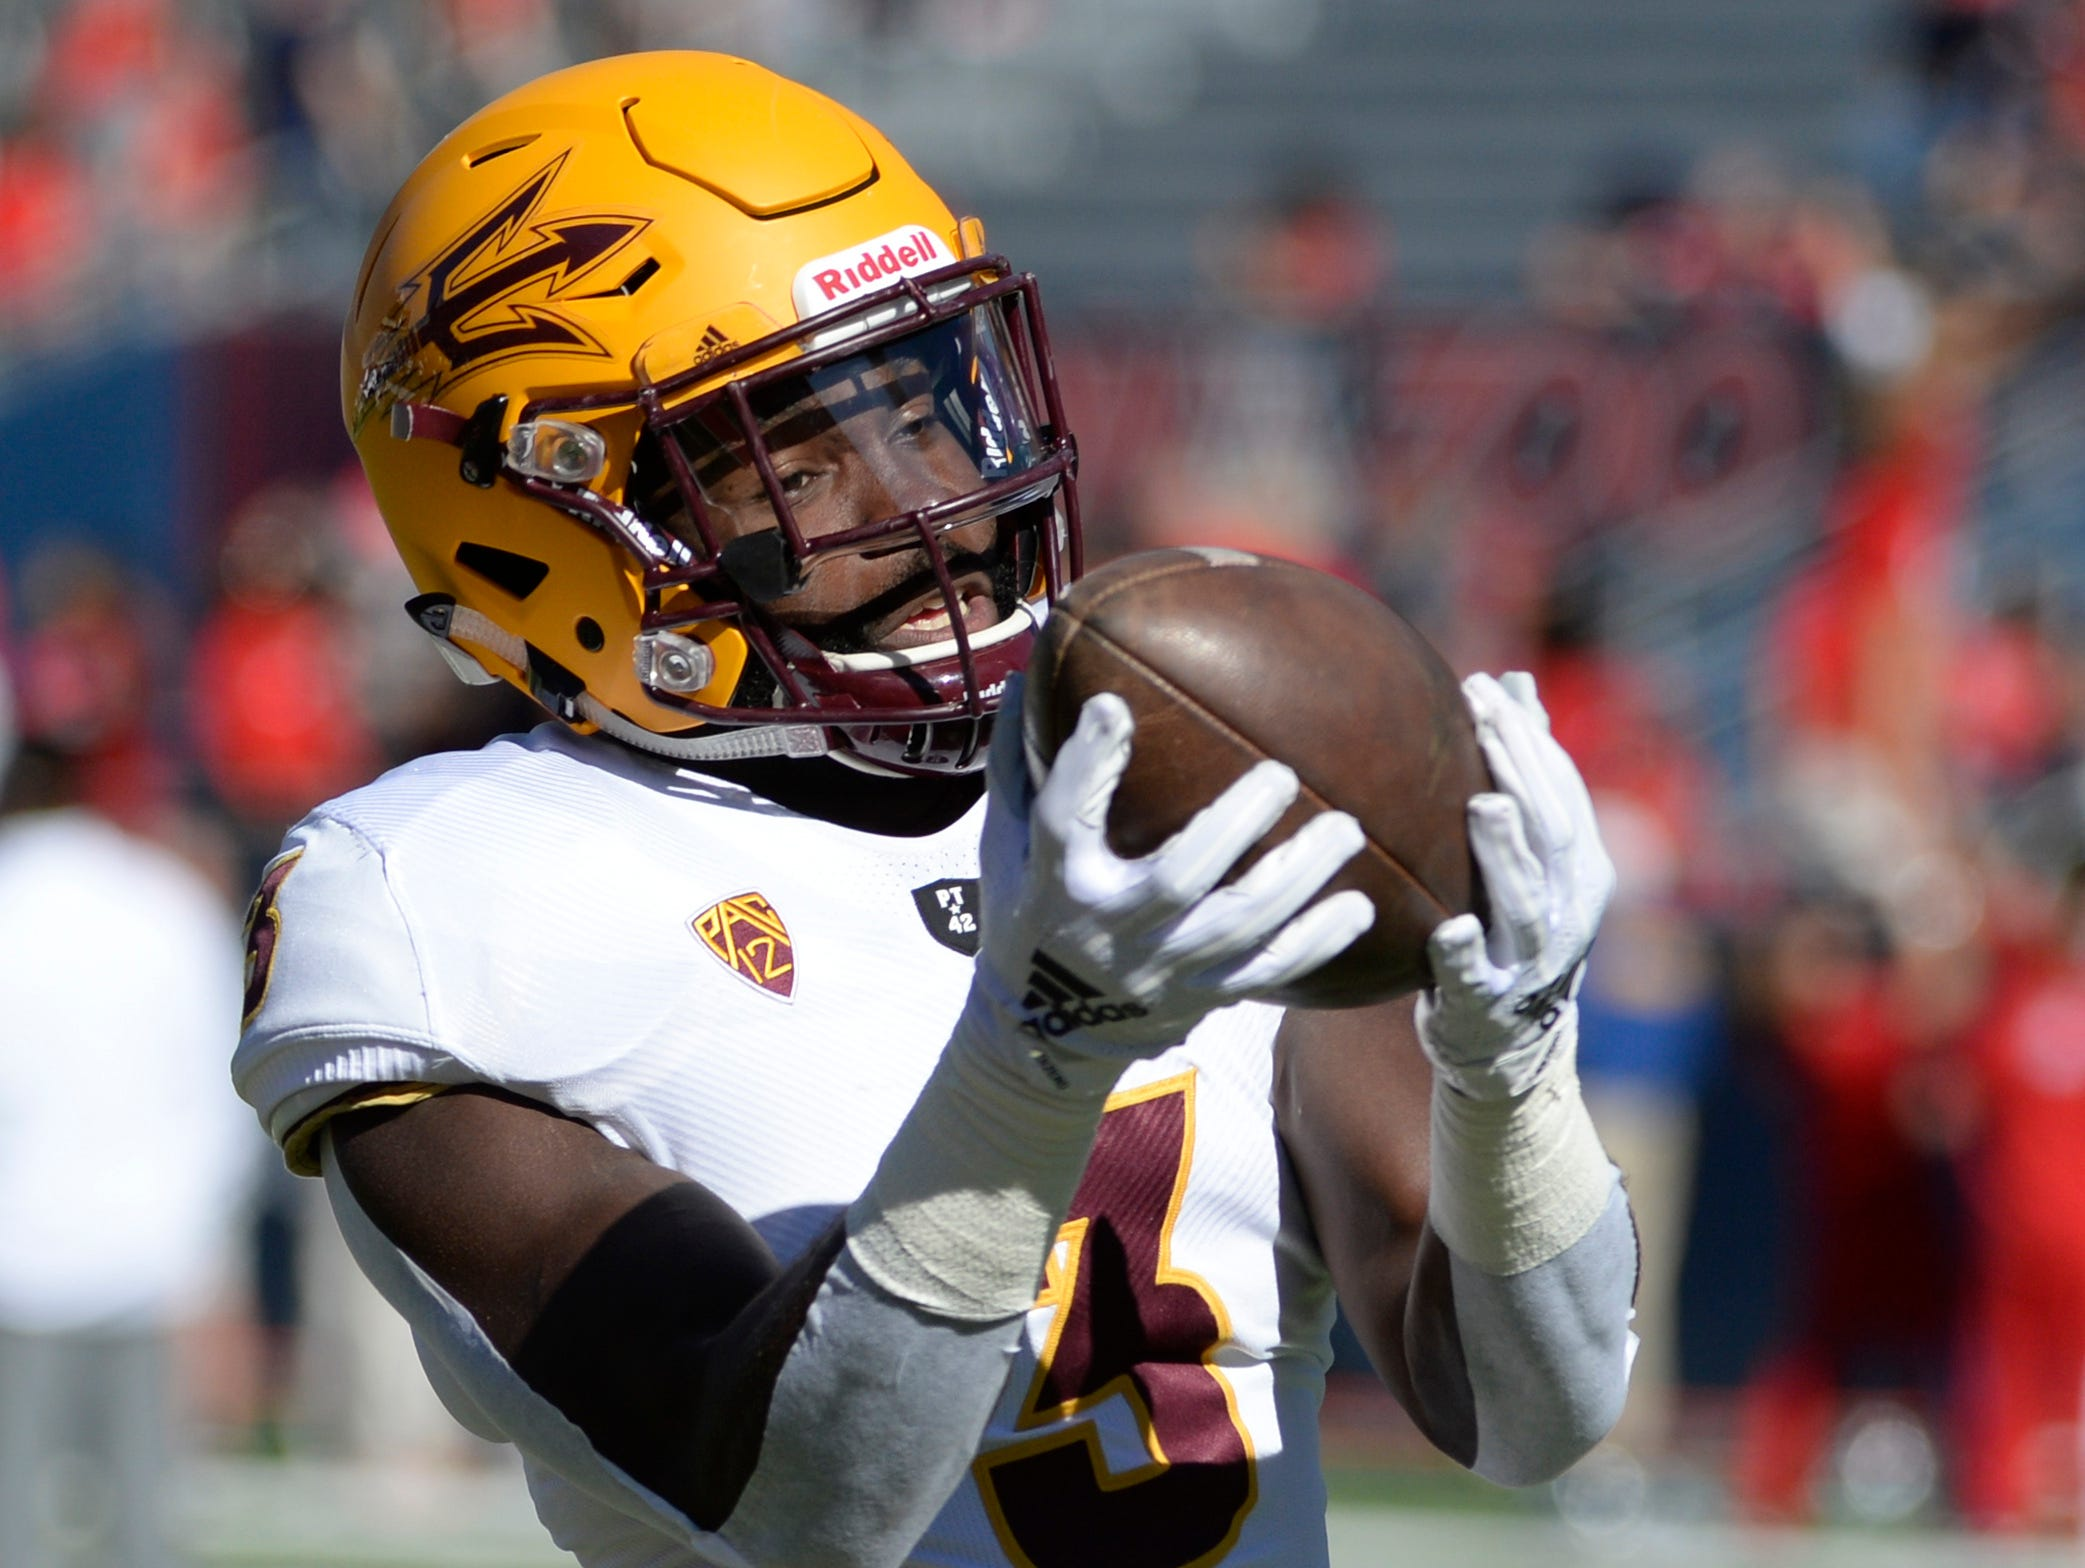 Nov 24, 2018; Tucson, AZ, USA; Arizona State Sun Devils running back Eno Benjamin (3) warms up before playing the Arizona Wildcats at Arizona Stadium. Mandatory Credit: Casey Sapio-USA TODAY Sports